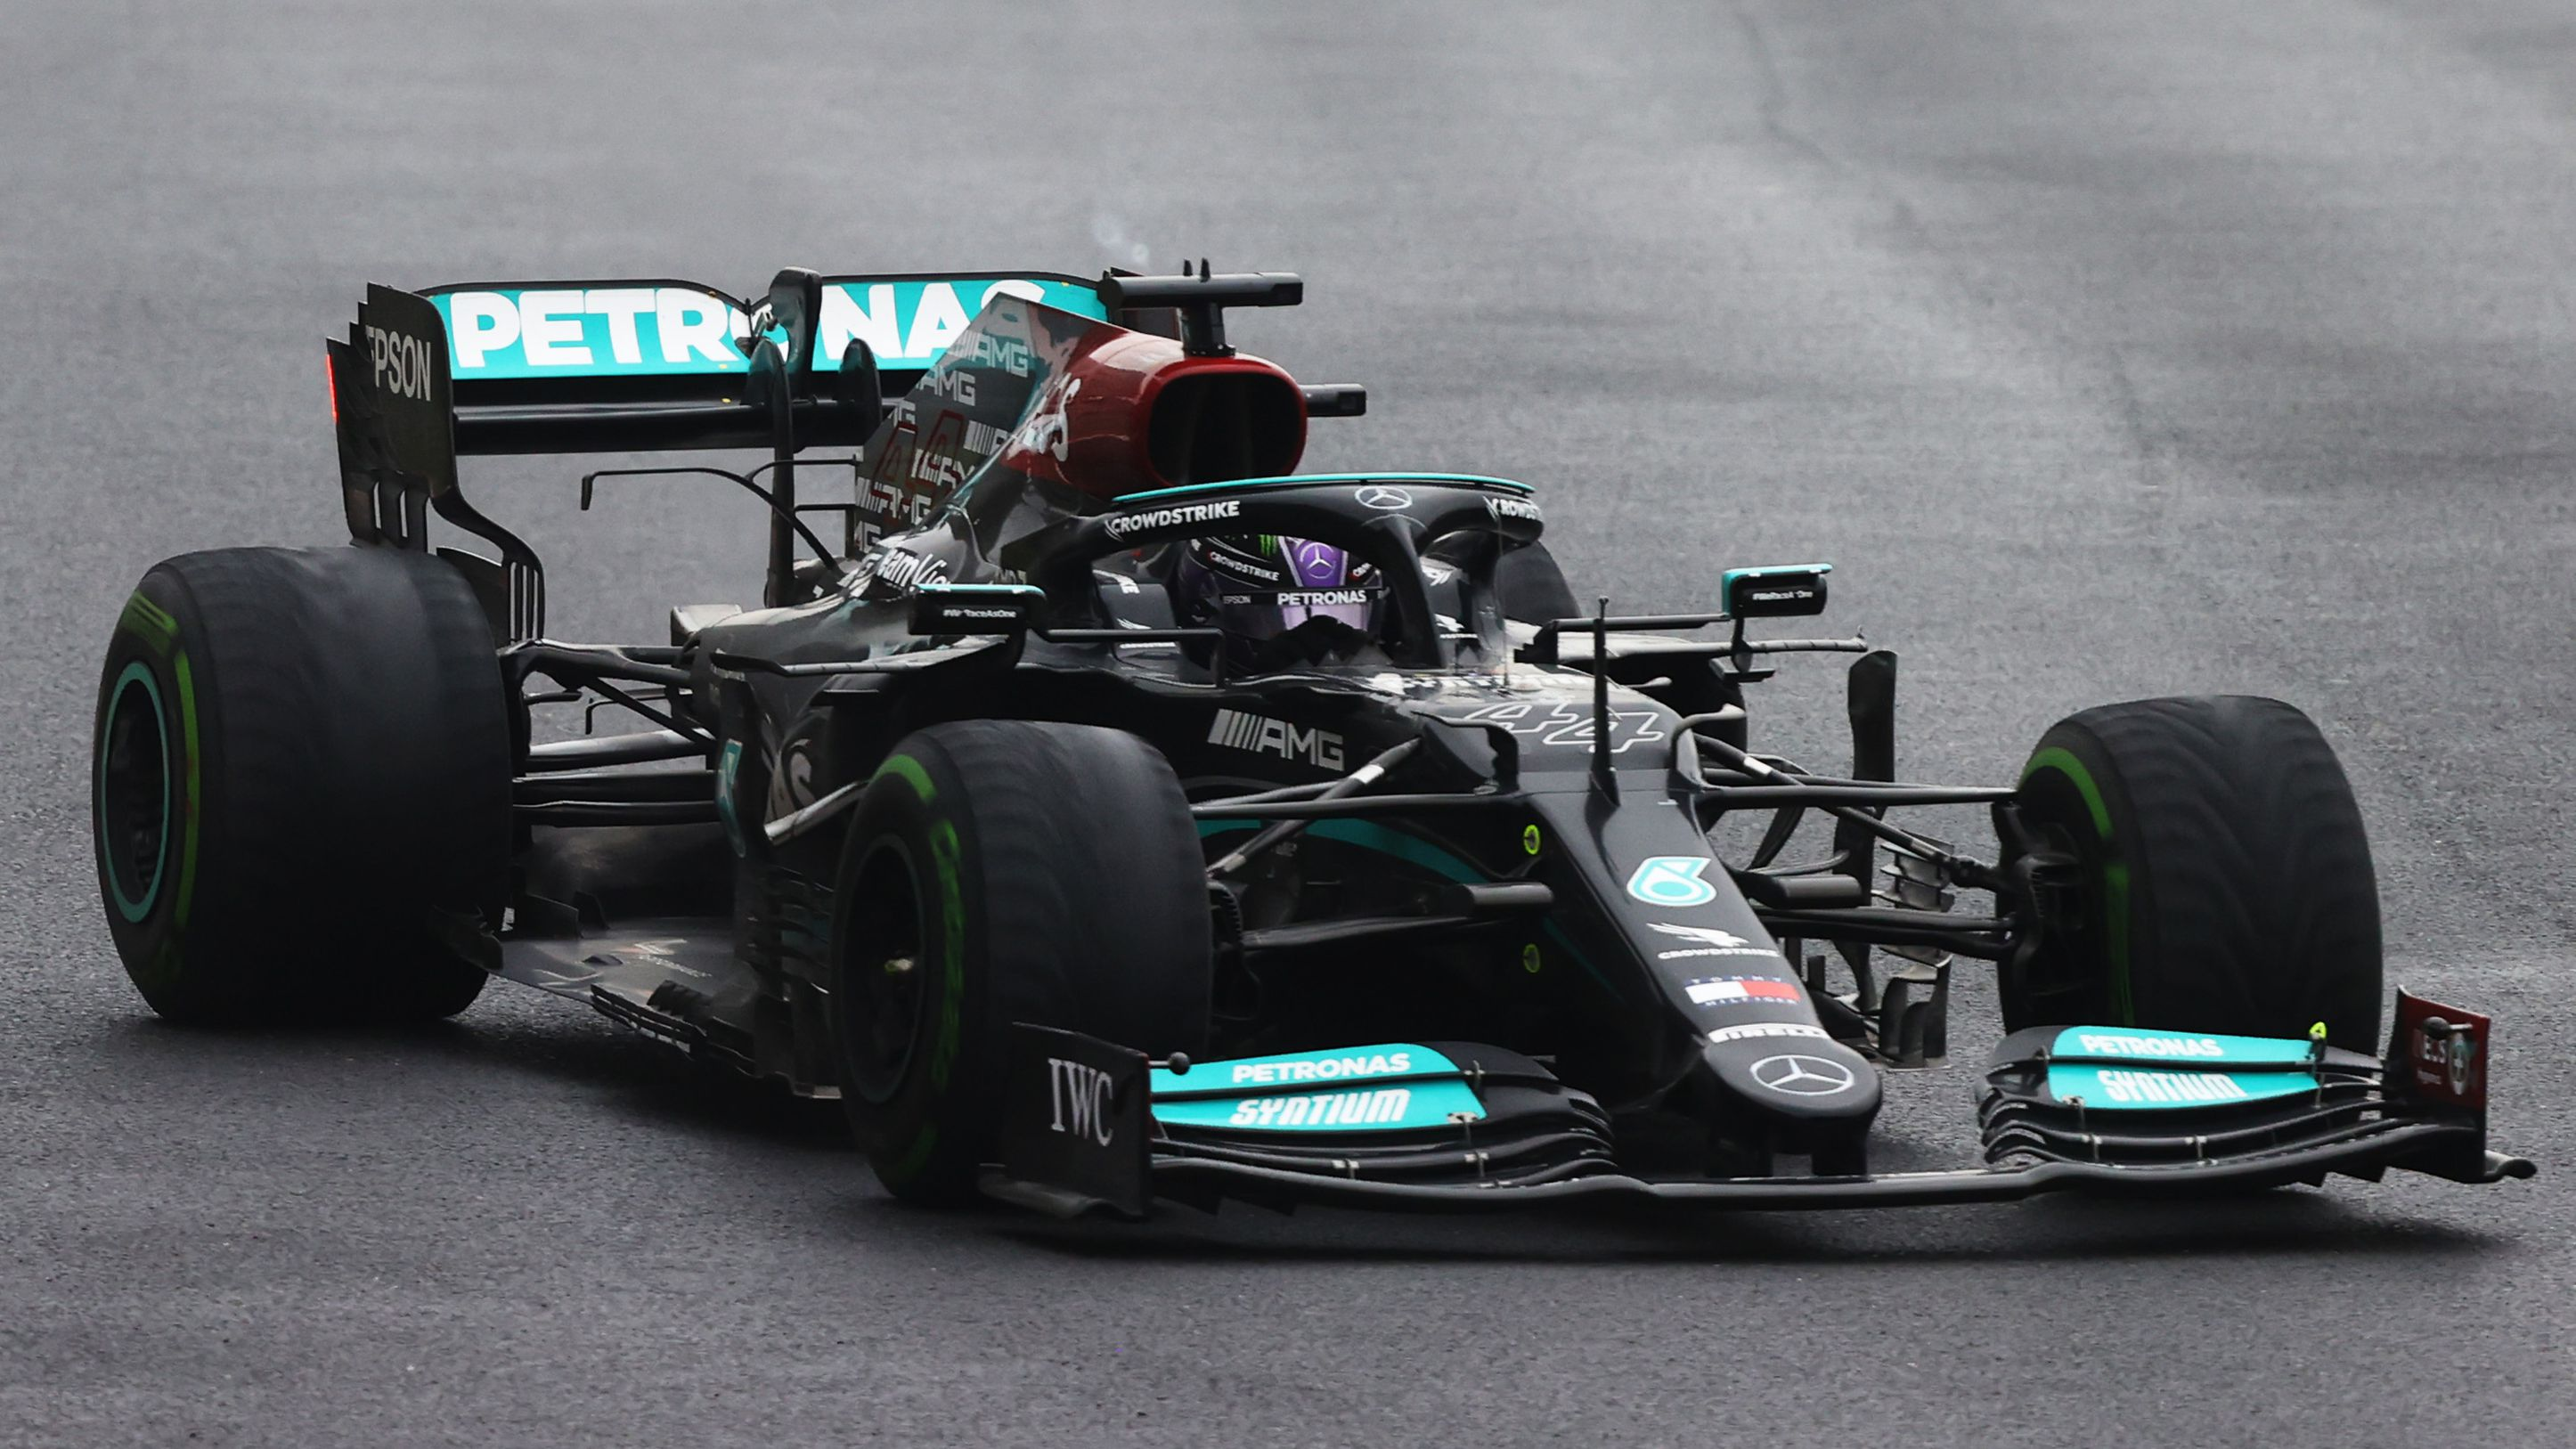 Red Bull boss Christian Horner questions 'significant' Mercedes speed advantage